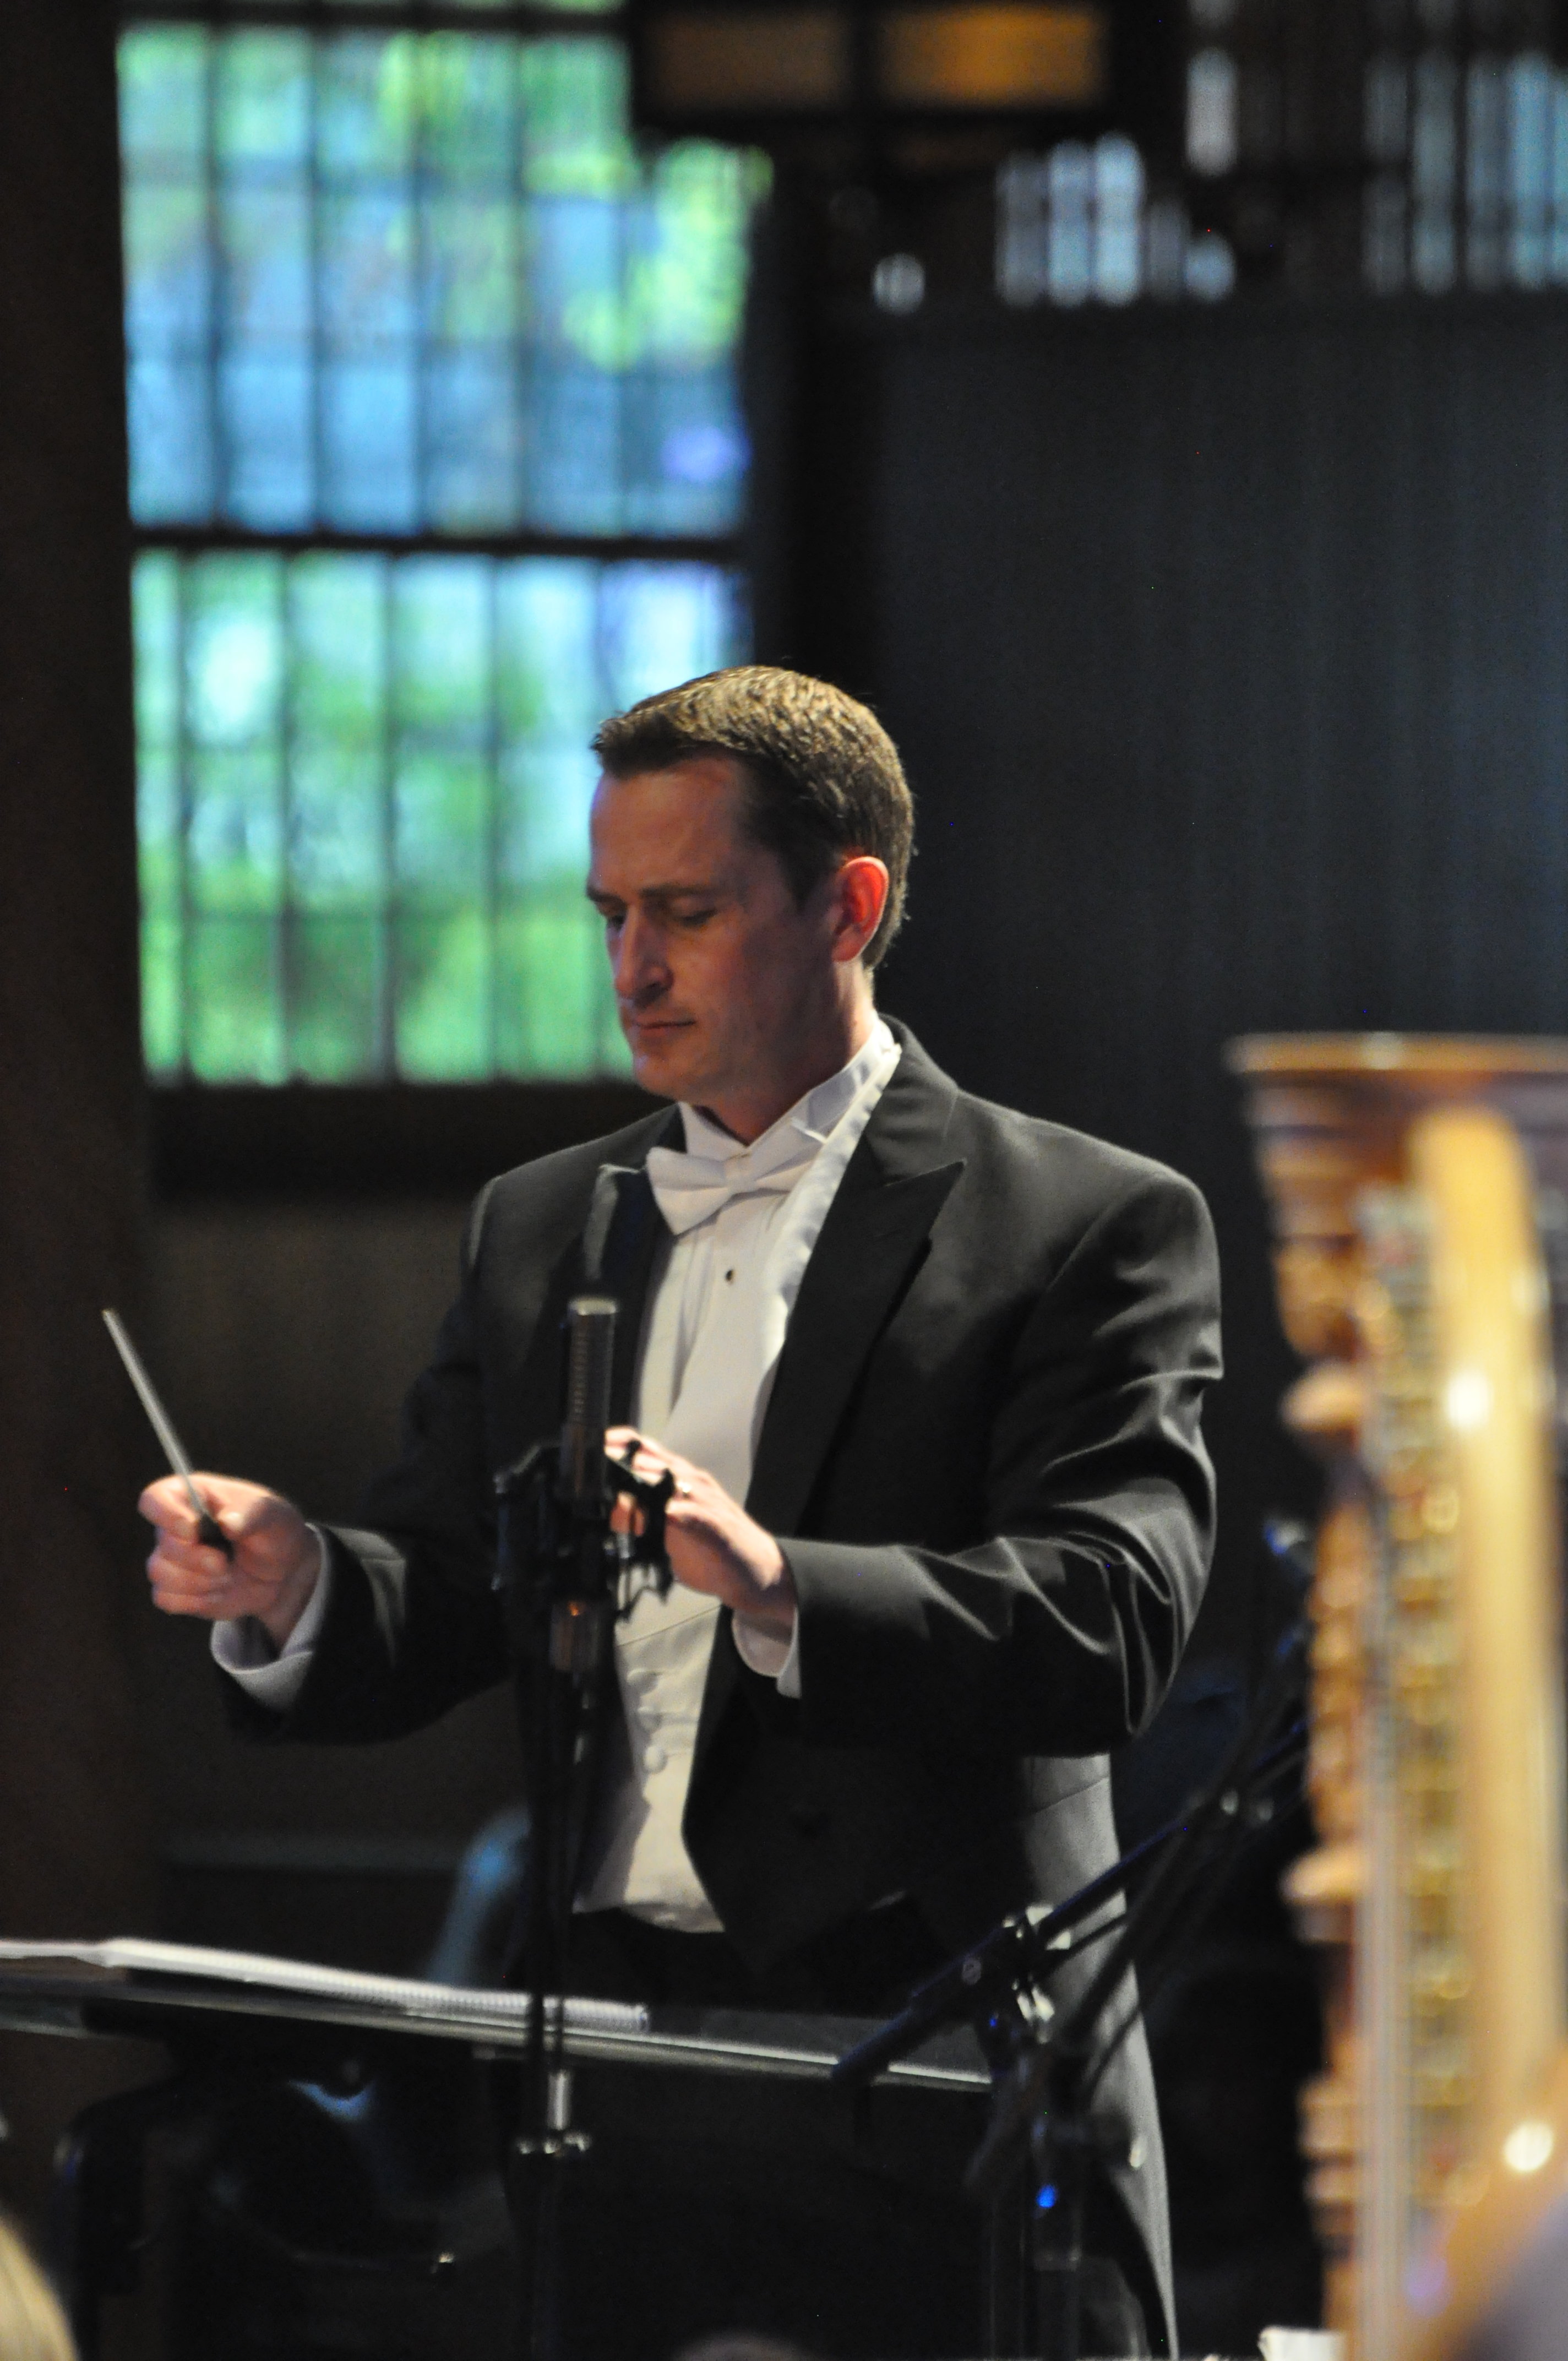 Ryan Murphy, the associate director of The Tabernacle Choir at Temple Square and conductor of the Temple Square Chorale, conducted the April 29 and 30 concerts.